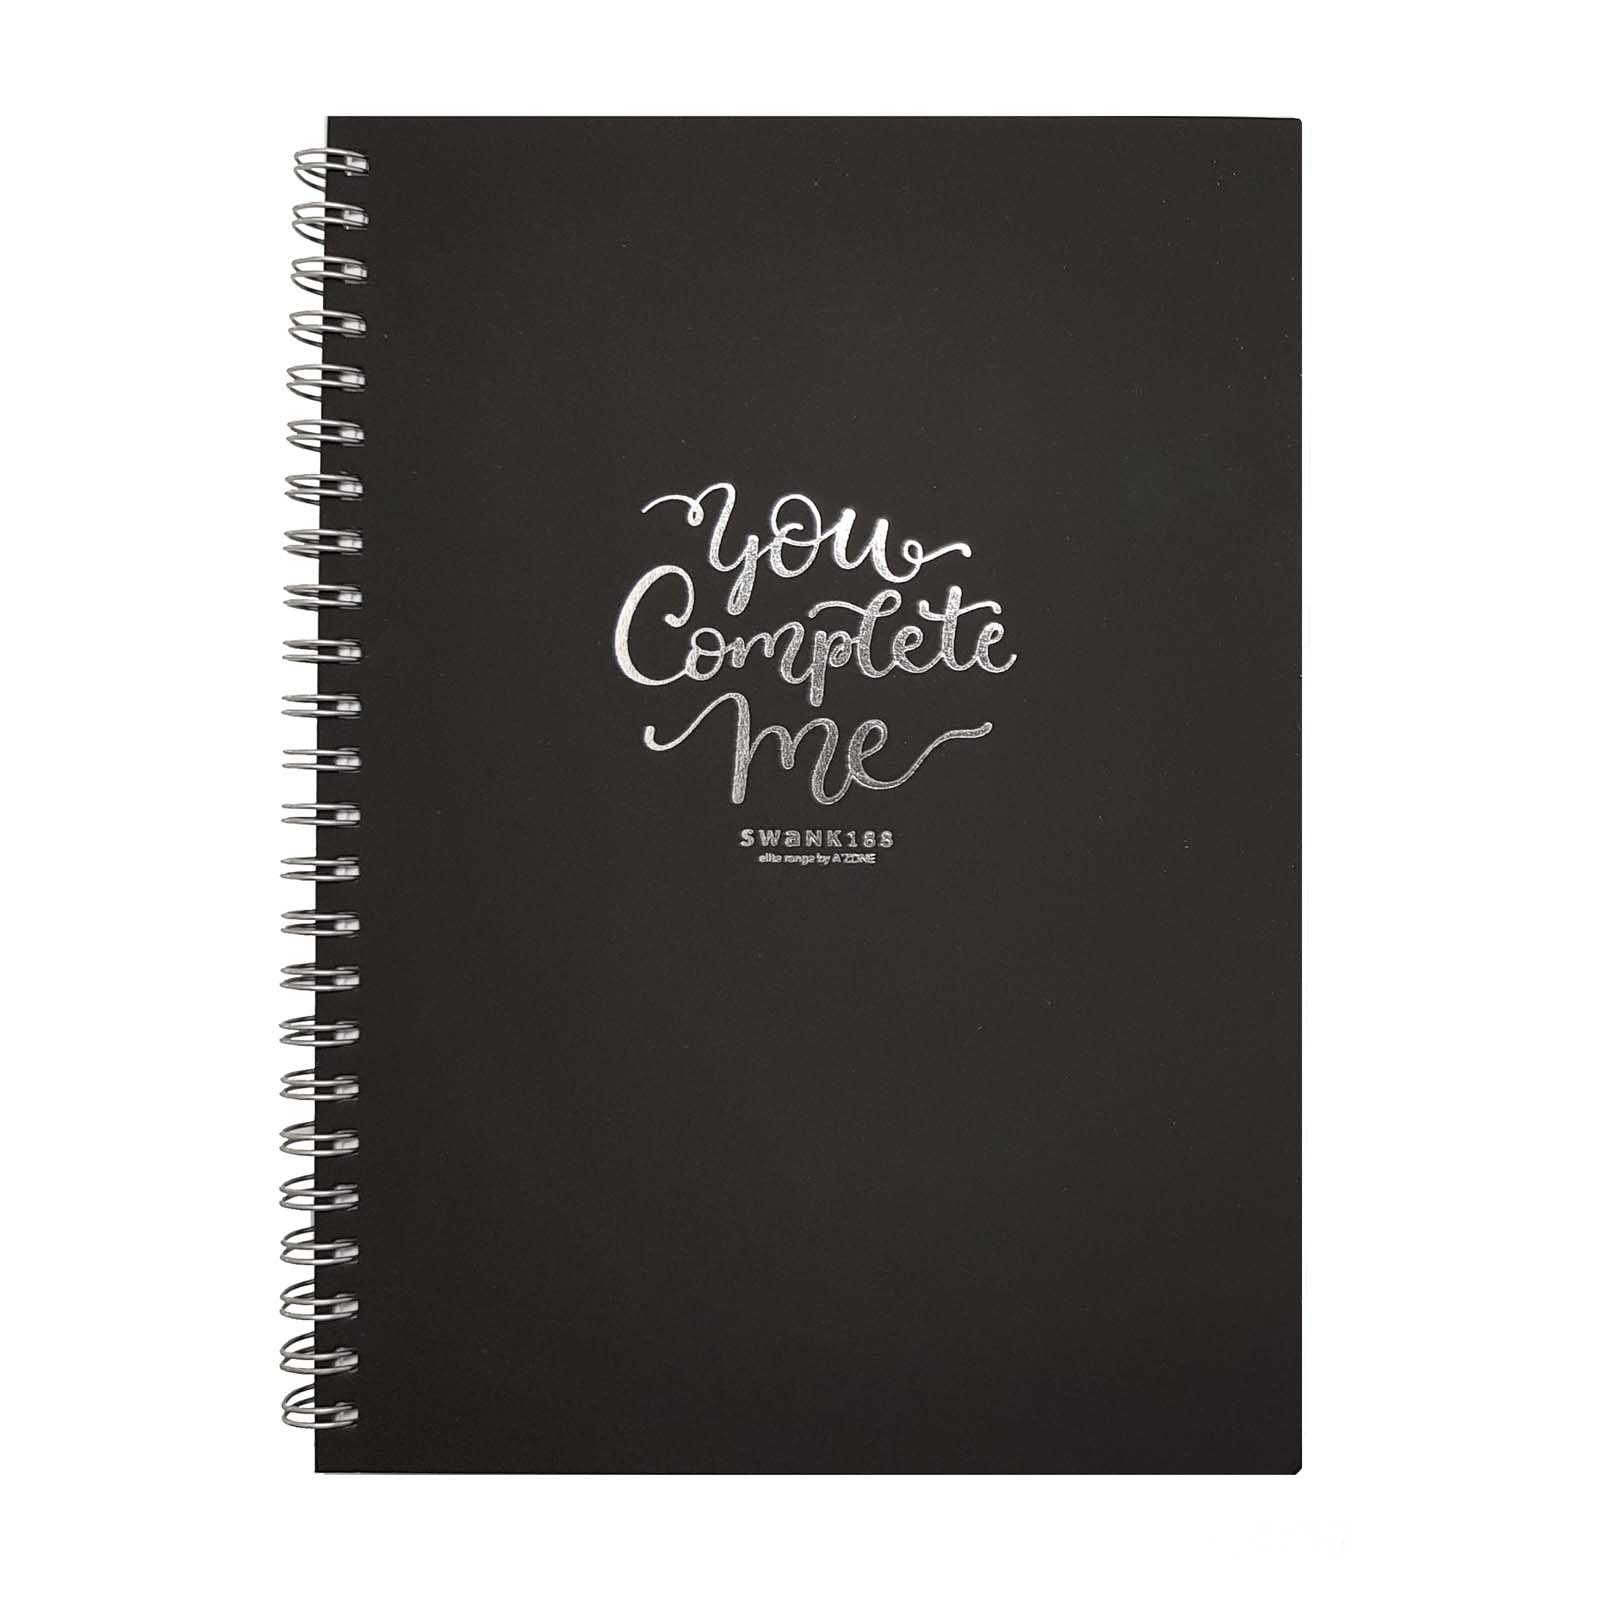 You Complete Me 188 Ringbook - A5